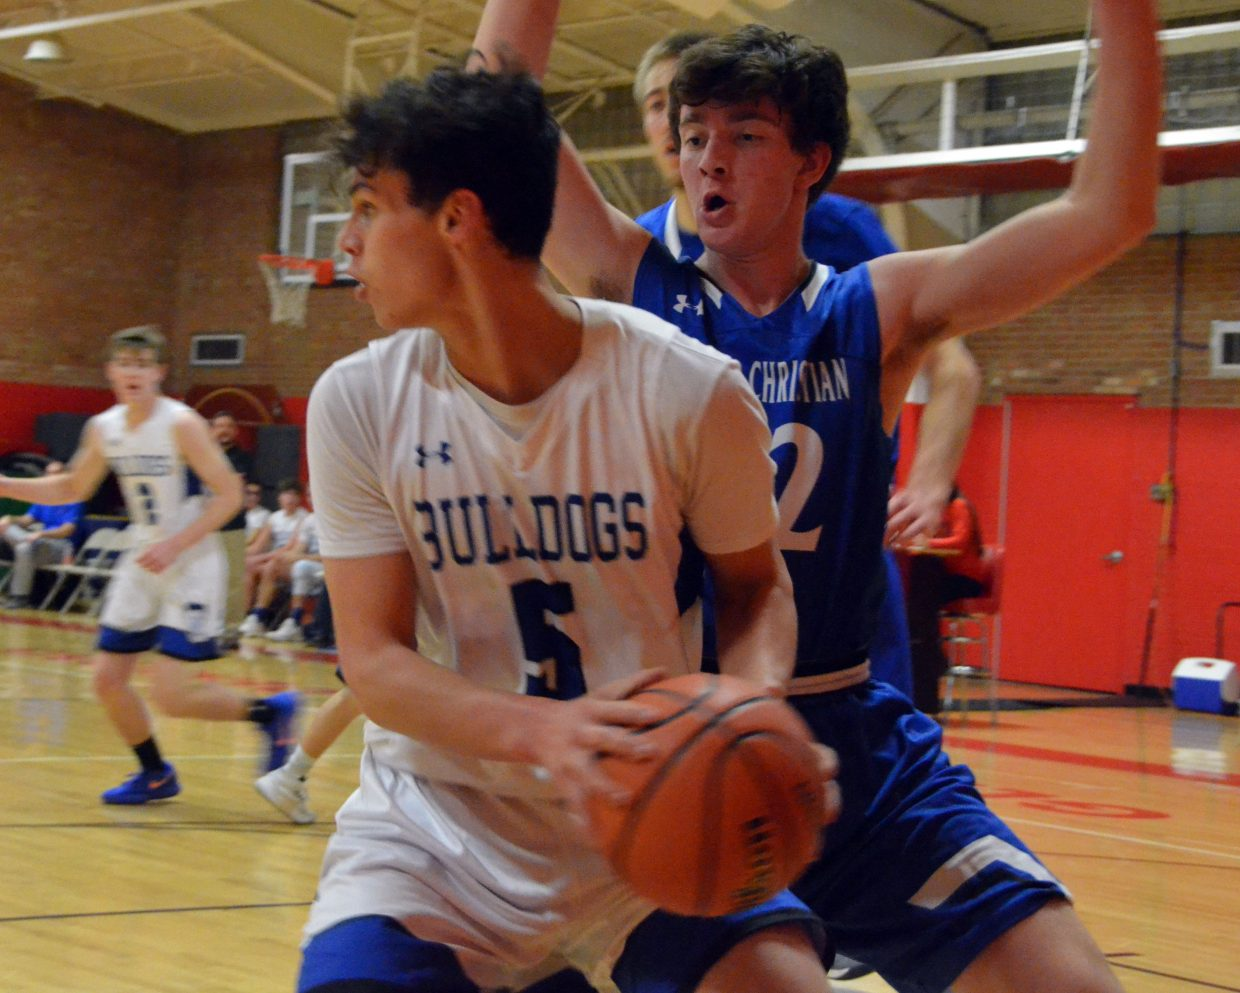 Moffat County High School's Jerod Chacon considers a pass against Denver Christian.